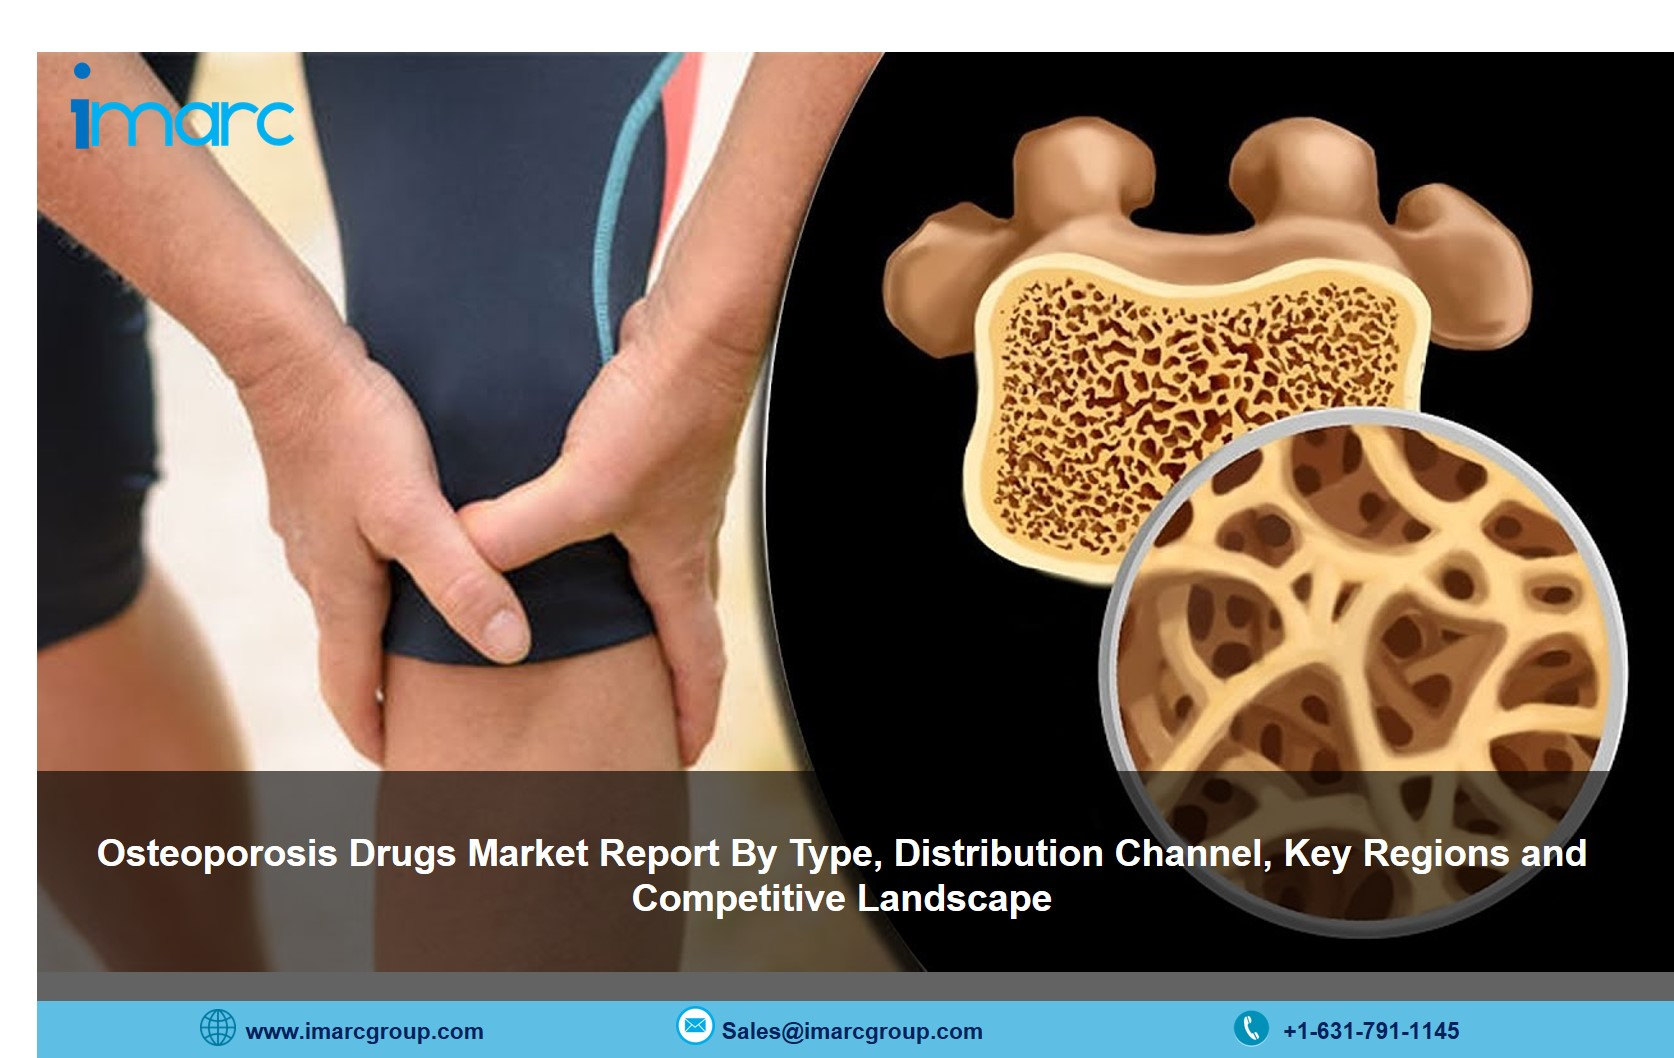 Osteoporosis Drugs Market 2021-26: Size. Share, Price and Industry Trends